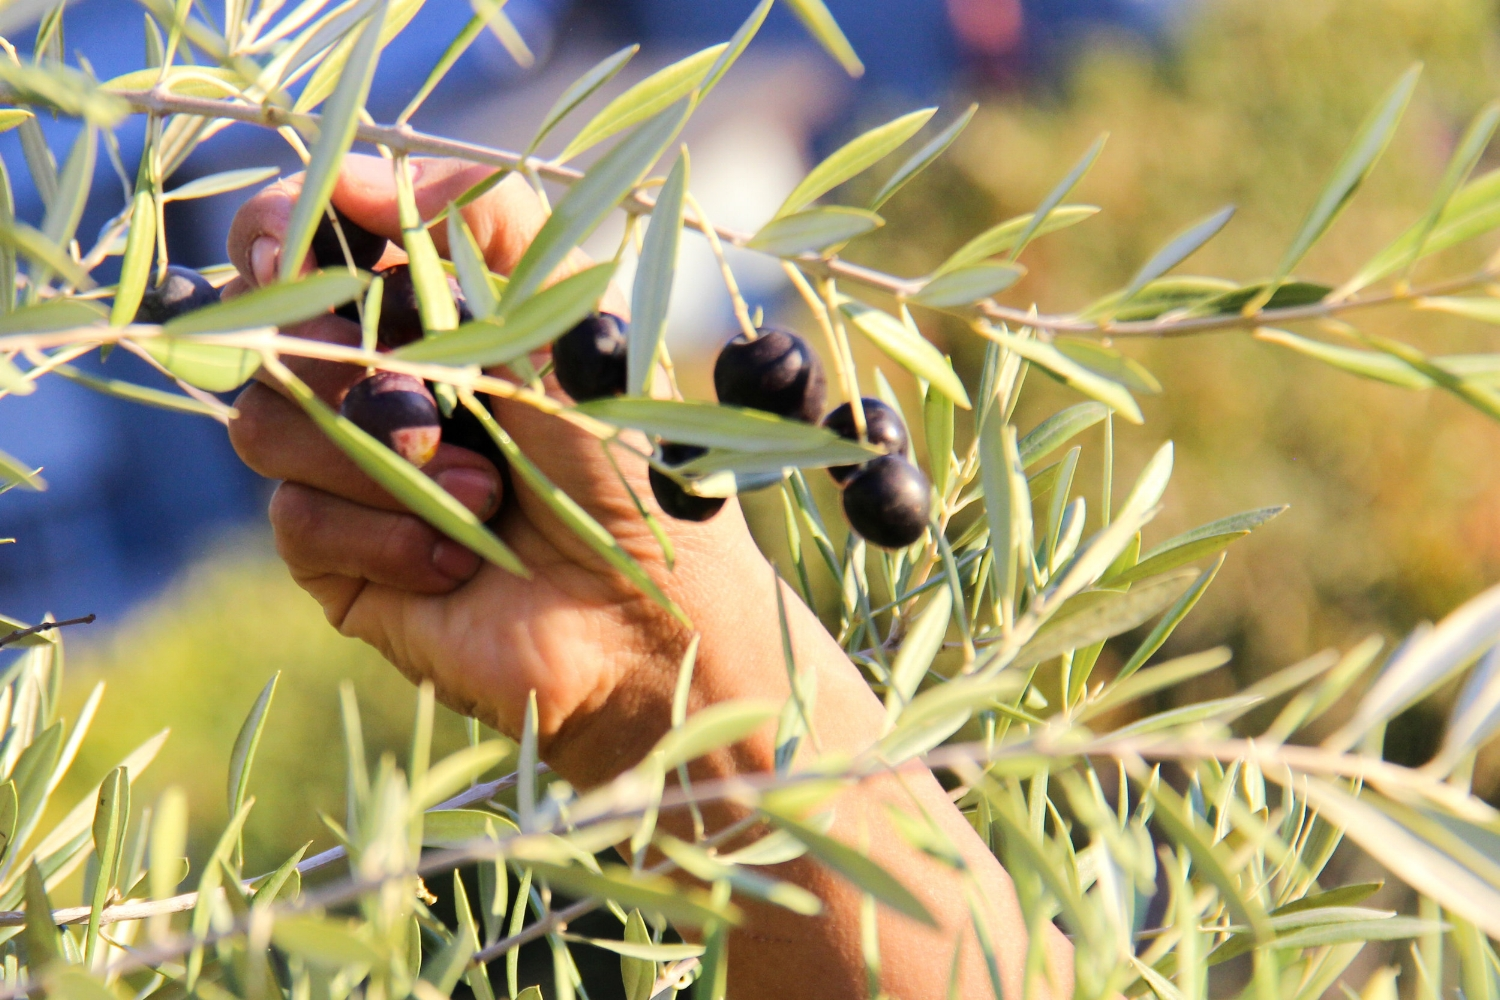 Yes, we pick all our olives by hand to ensure good quality olives and olive oil.